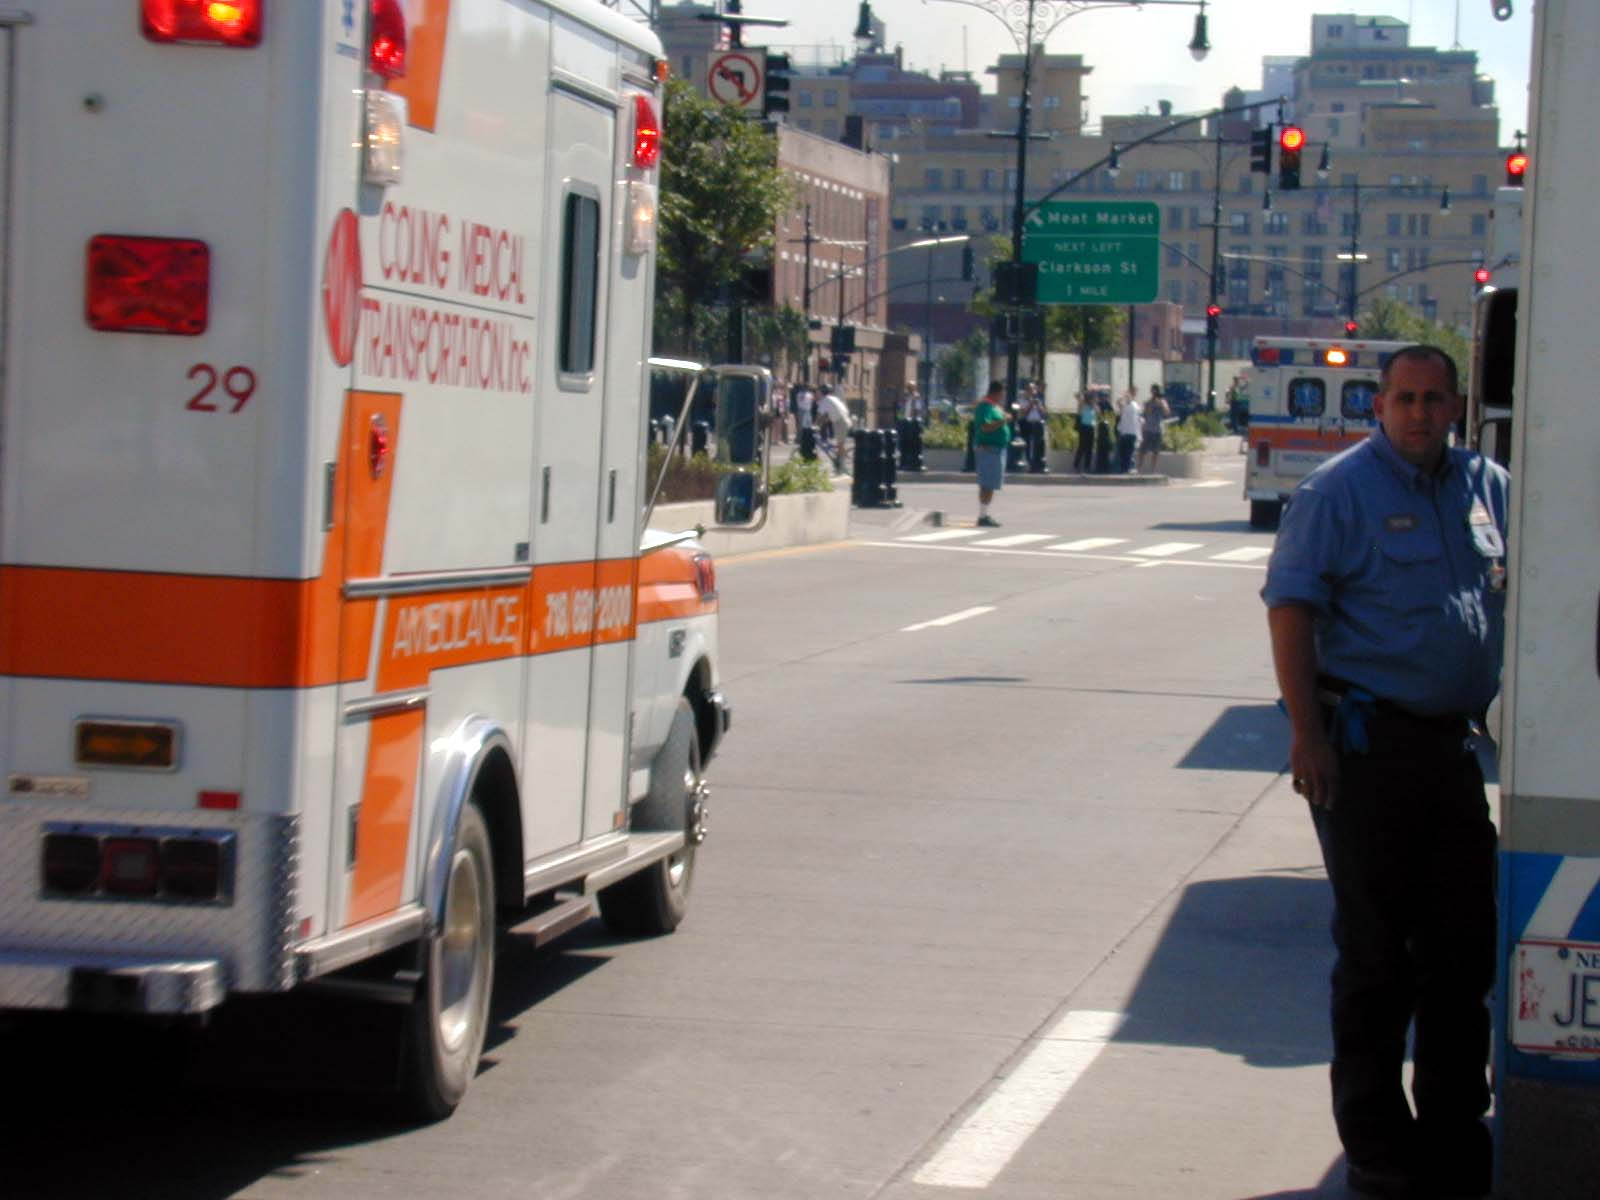 088 - Thu 1PM - more ambulances take off for downtown